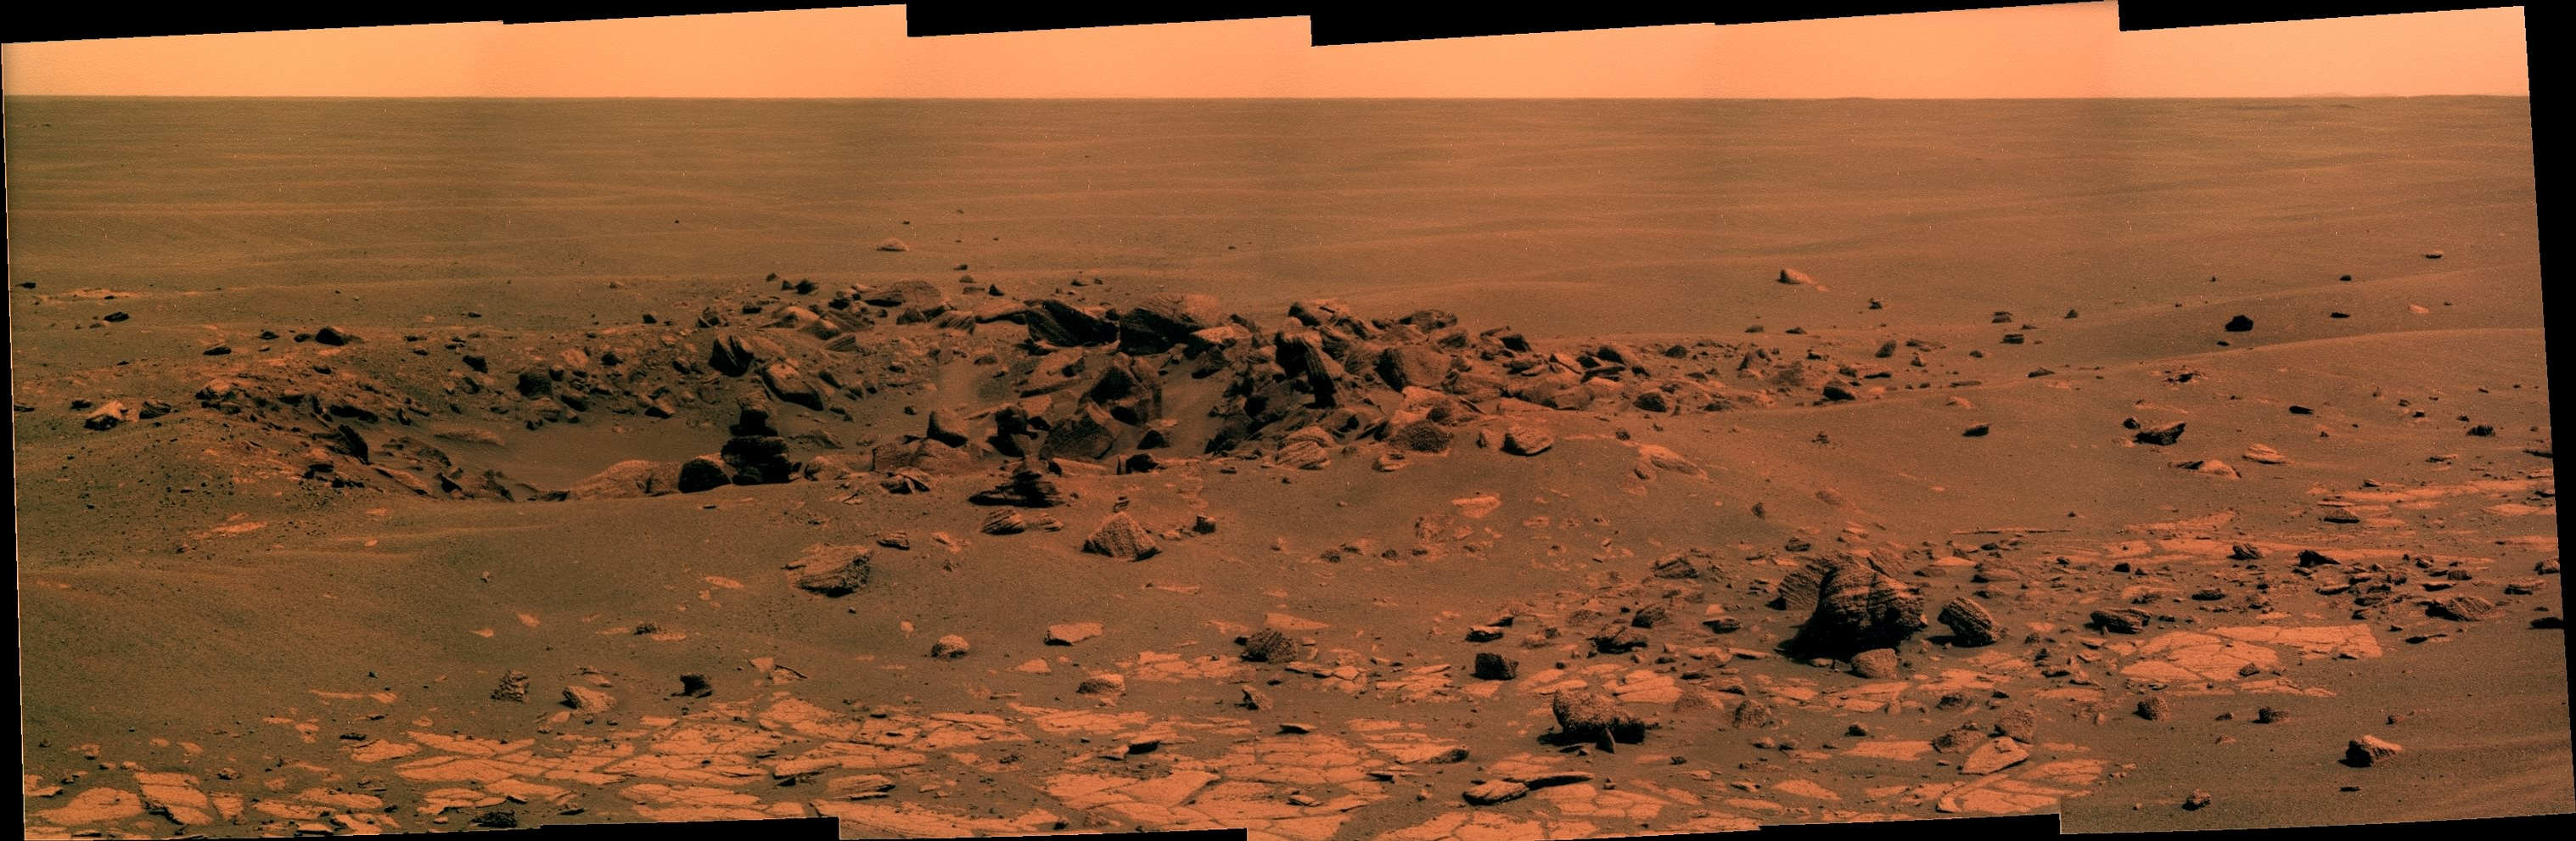 Sol1826-27-28-ResolutionCrater.jpg